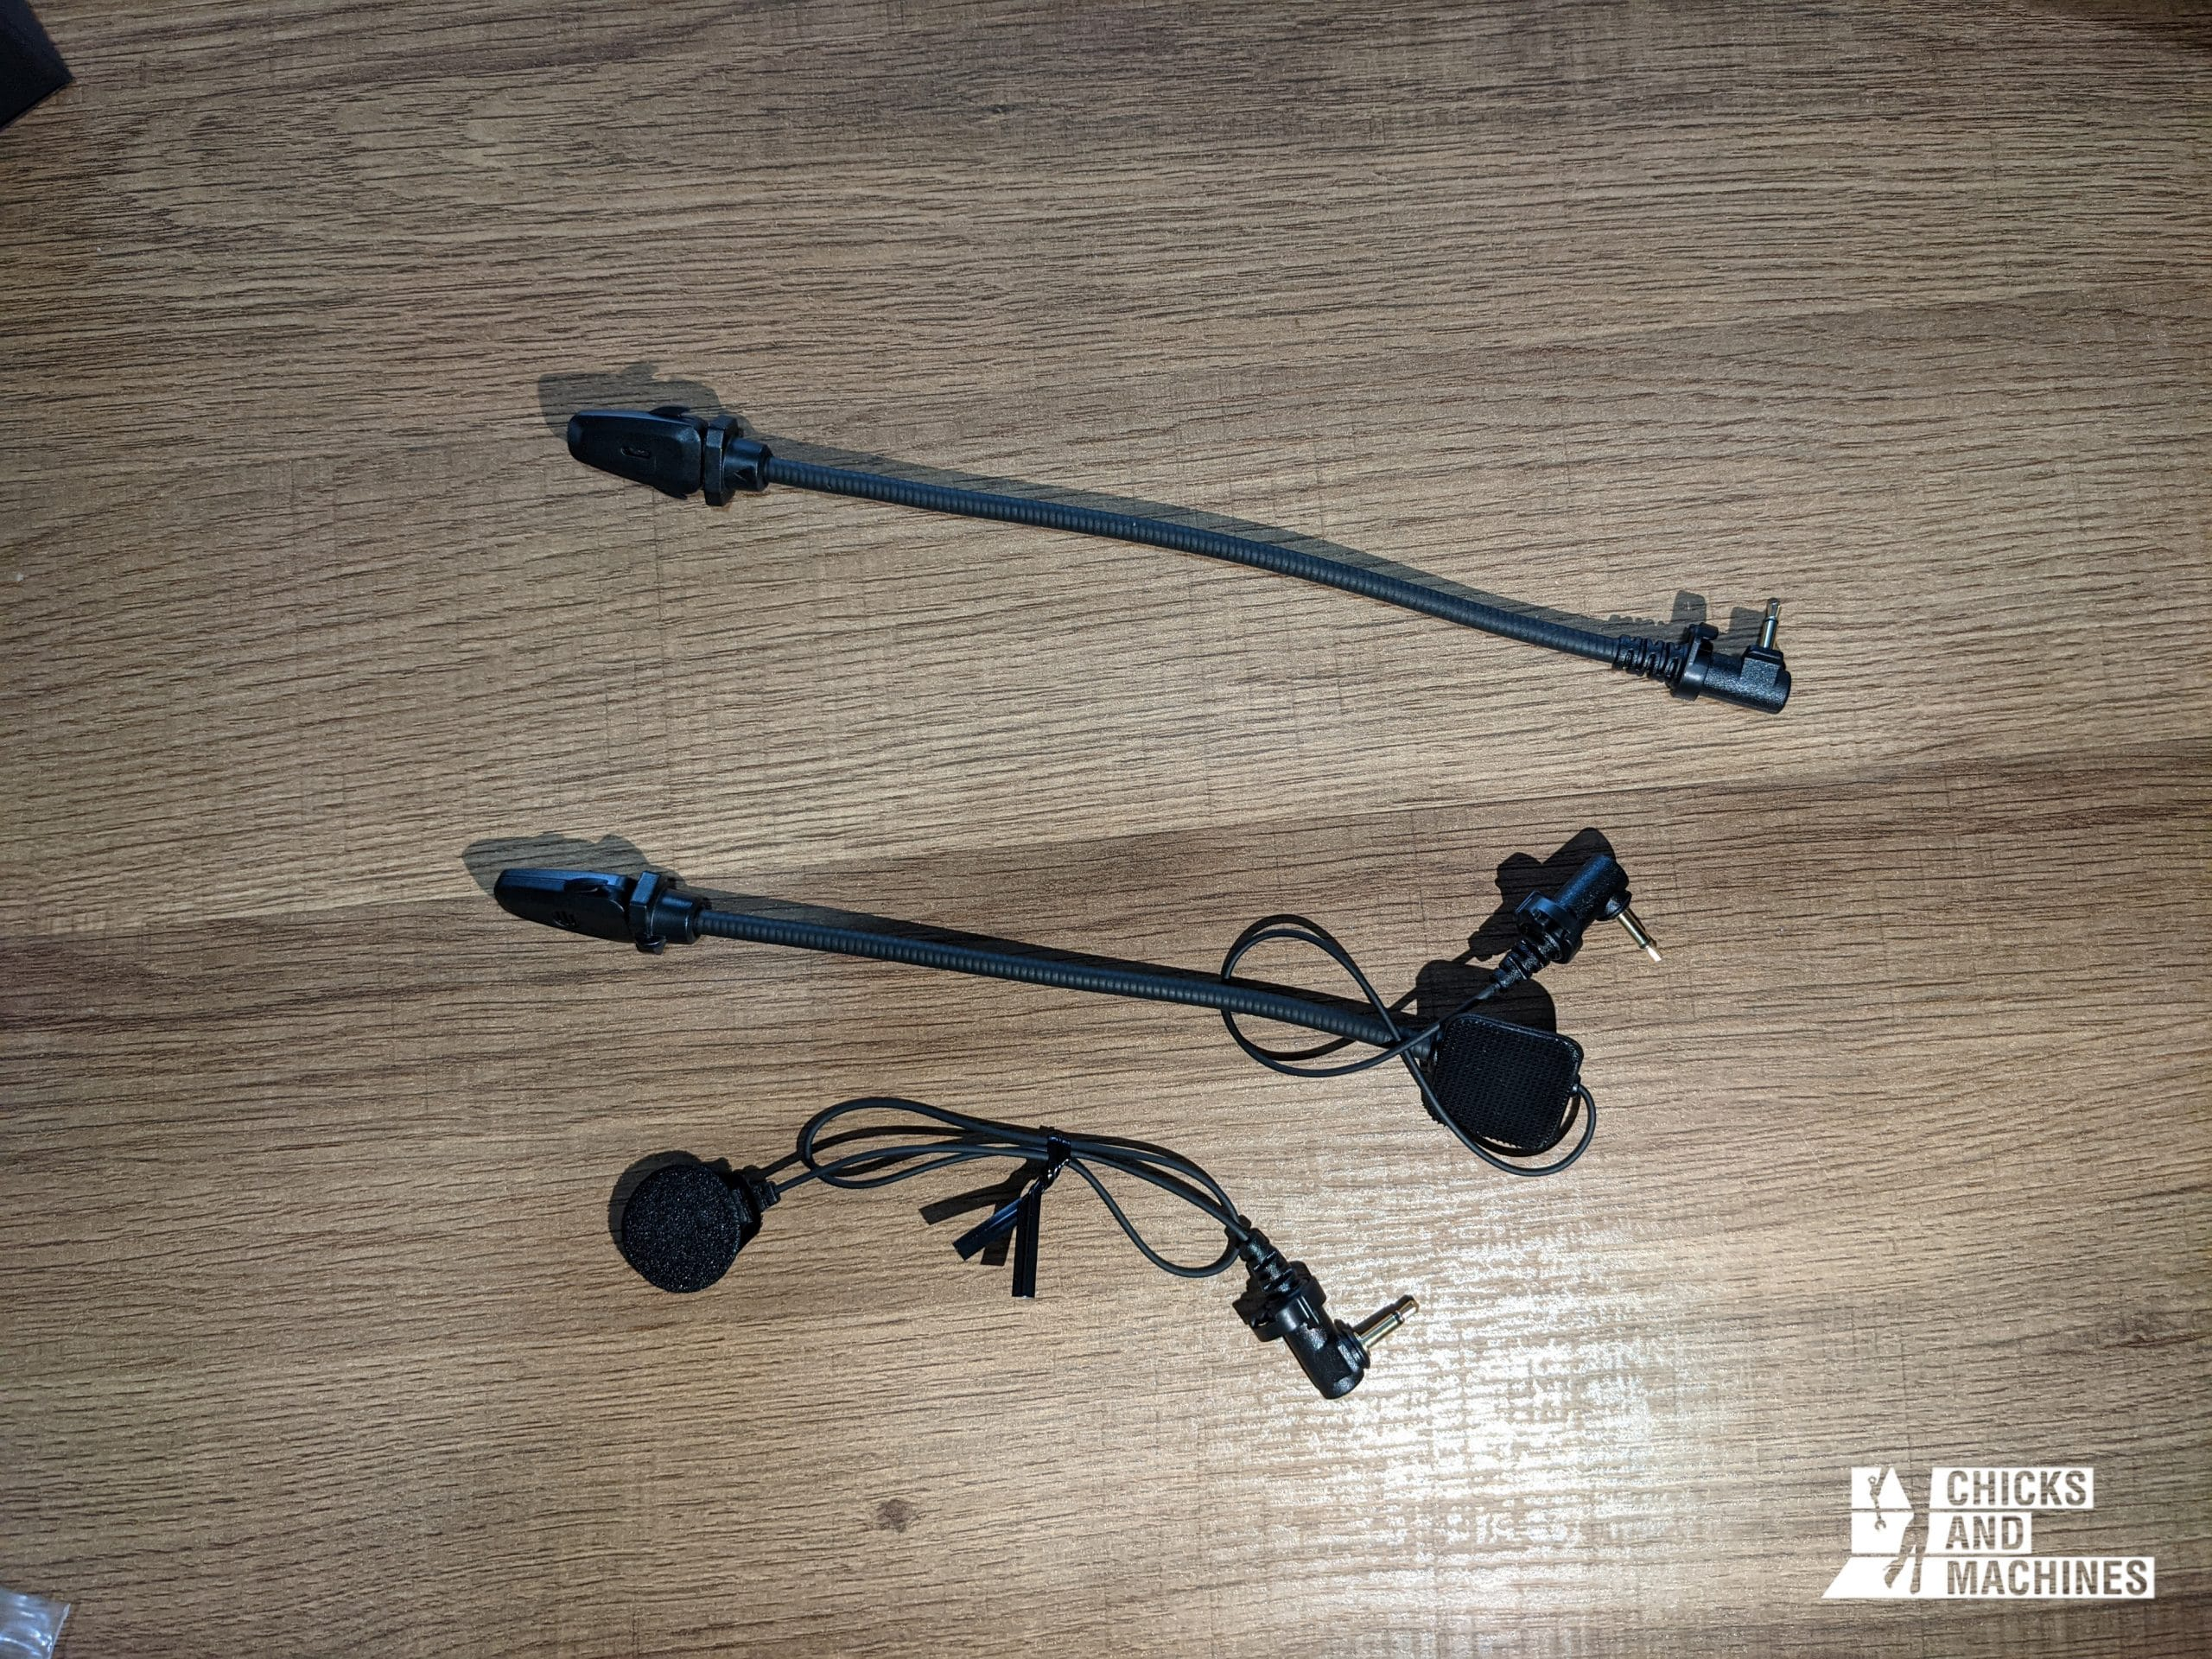 The different microphone options provided with the Sena 50S